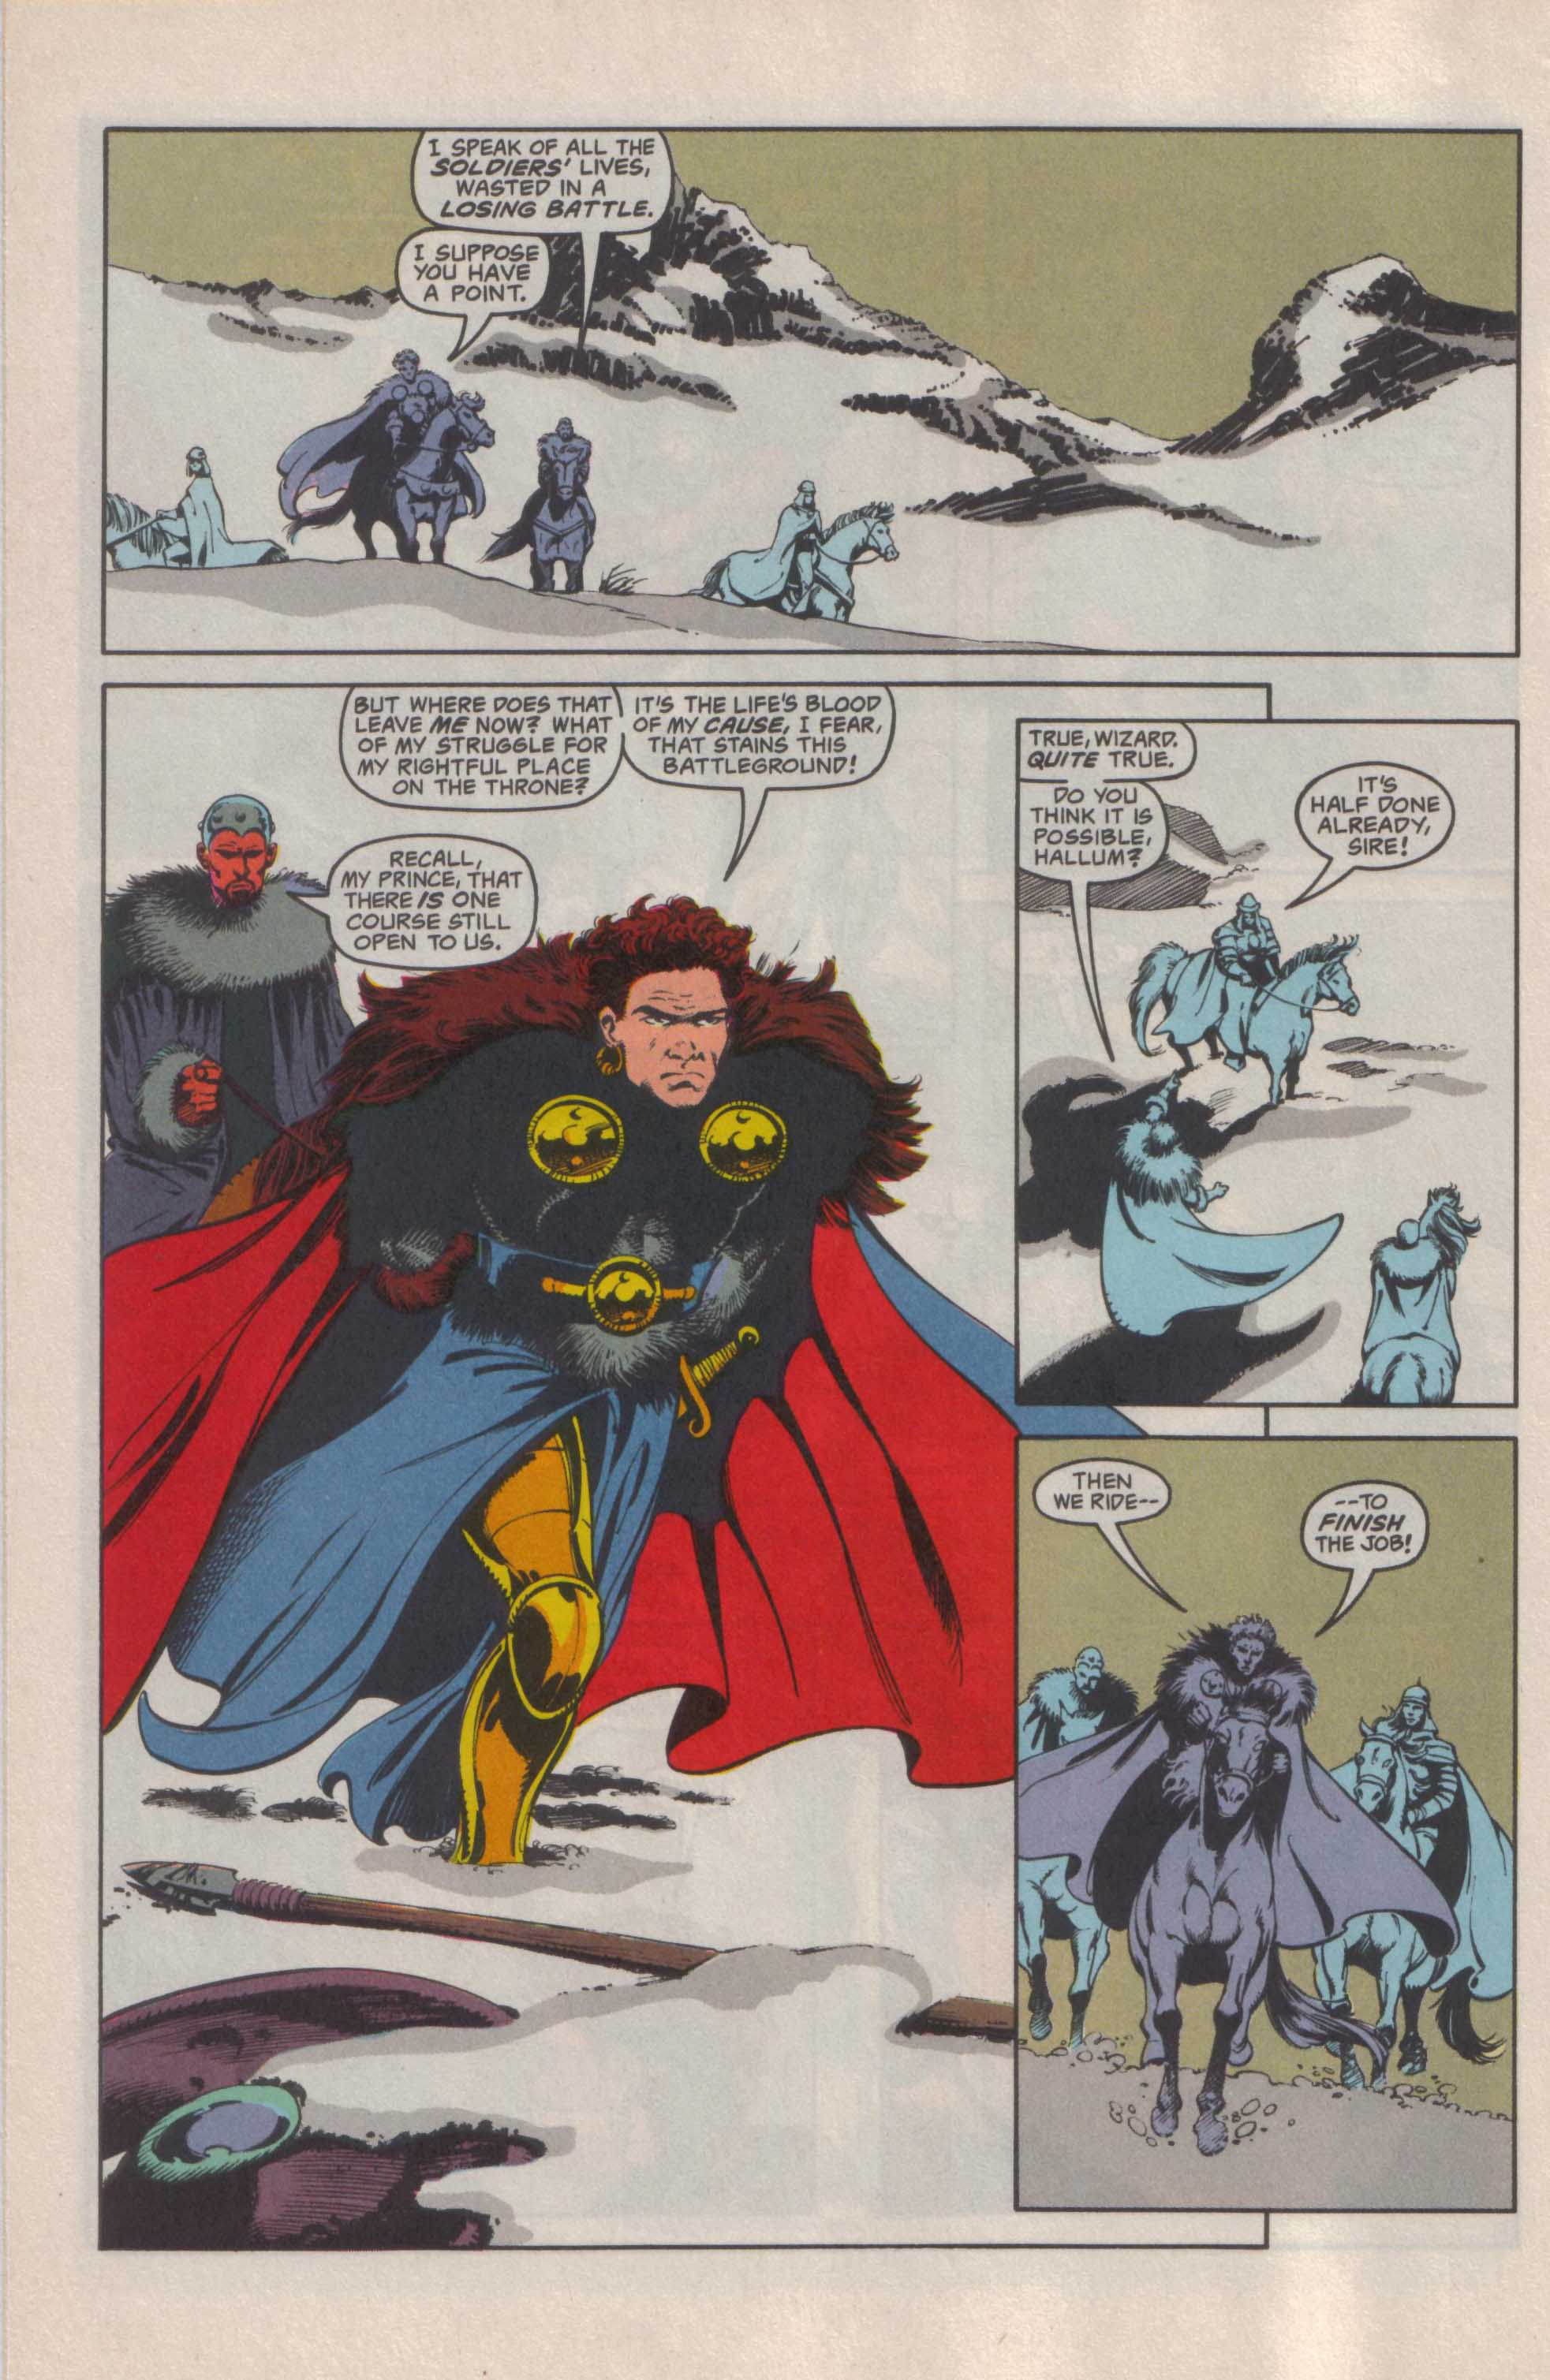 Read online Advanced Dungeons & Dragons comic -  Issue #25 - 12